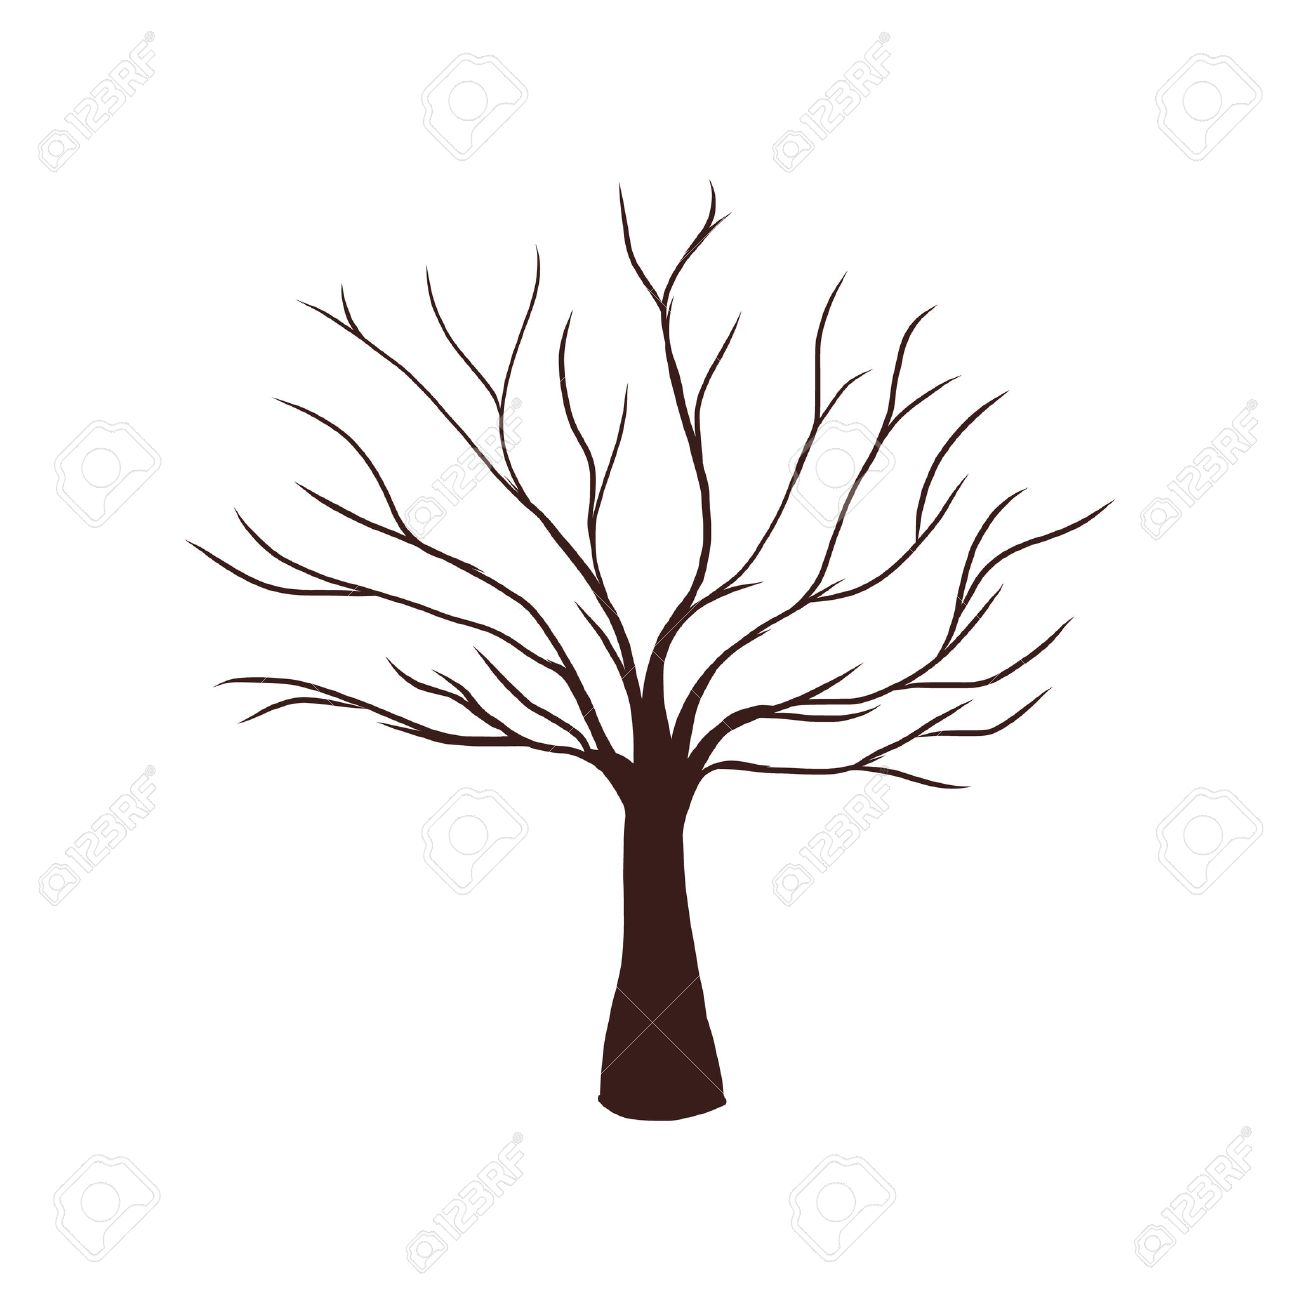 Dead Tree without Leaves How To Draw A Cartoon Tree Without Leaves